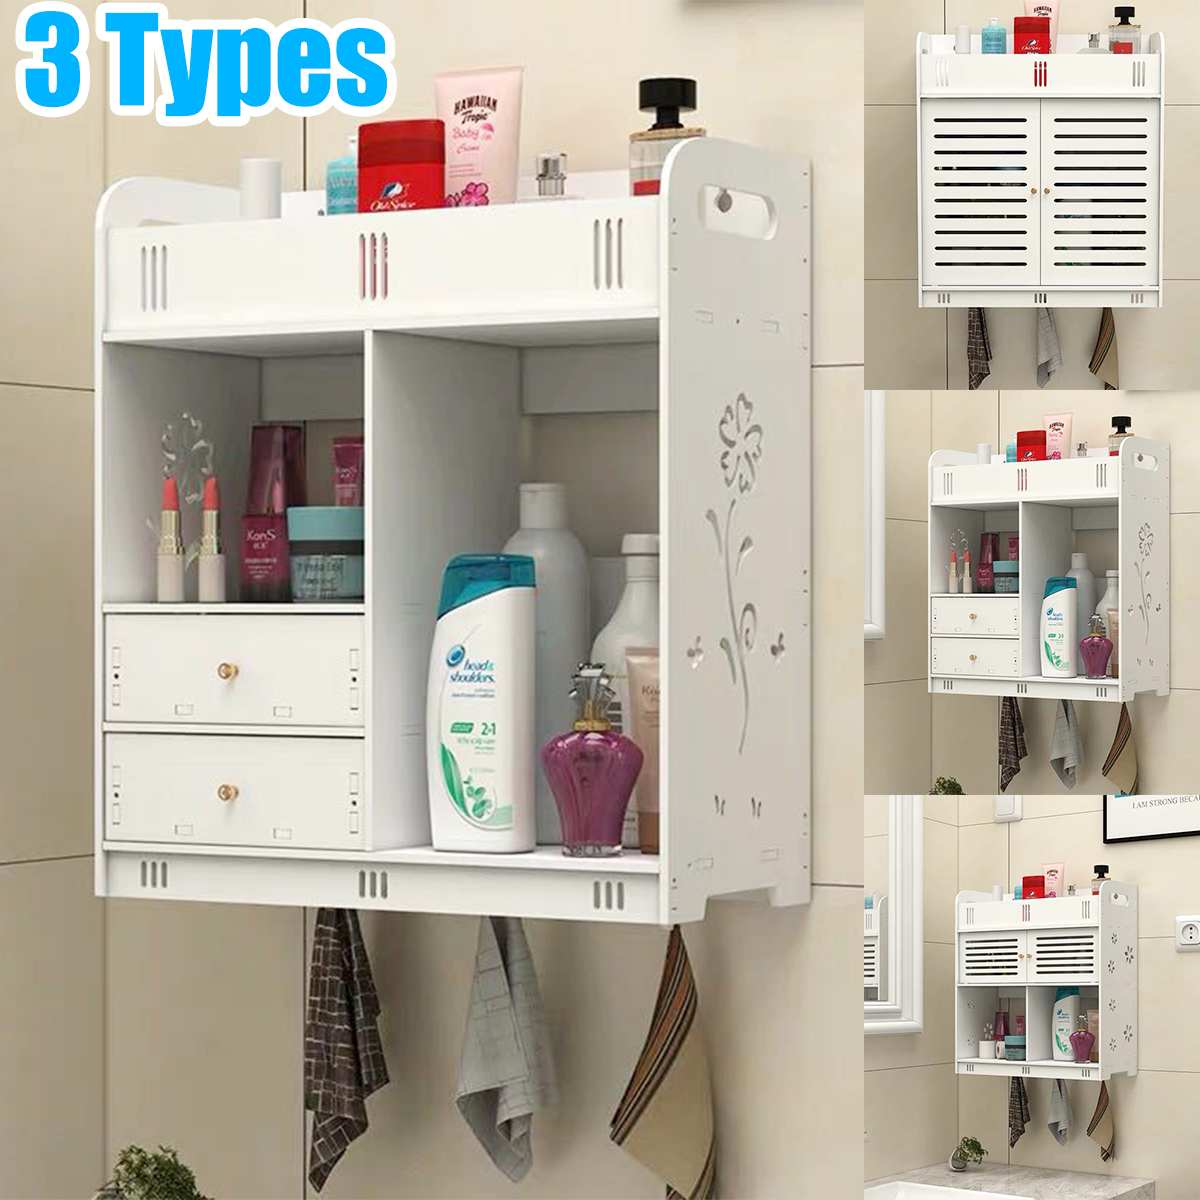 Bathroom Cabinet 38x18x43cm Wall Mounted Bathroom Toilet Furniture Cabinet Wood-Plastic Cupboard Shelf Cosmetic Storage Rack